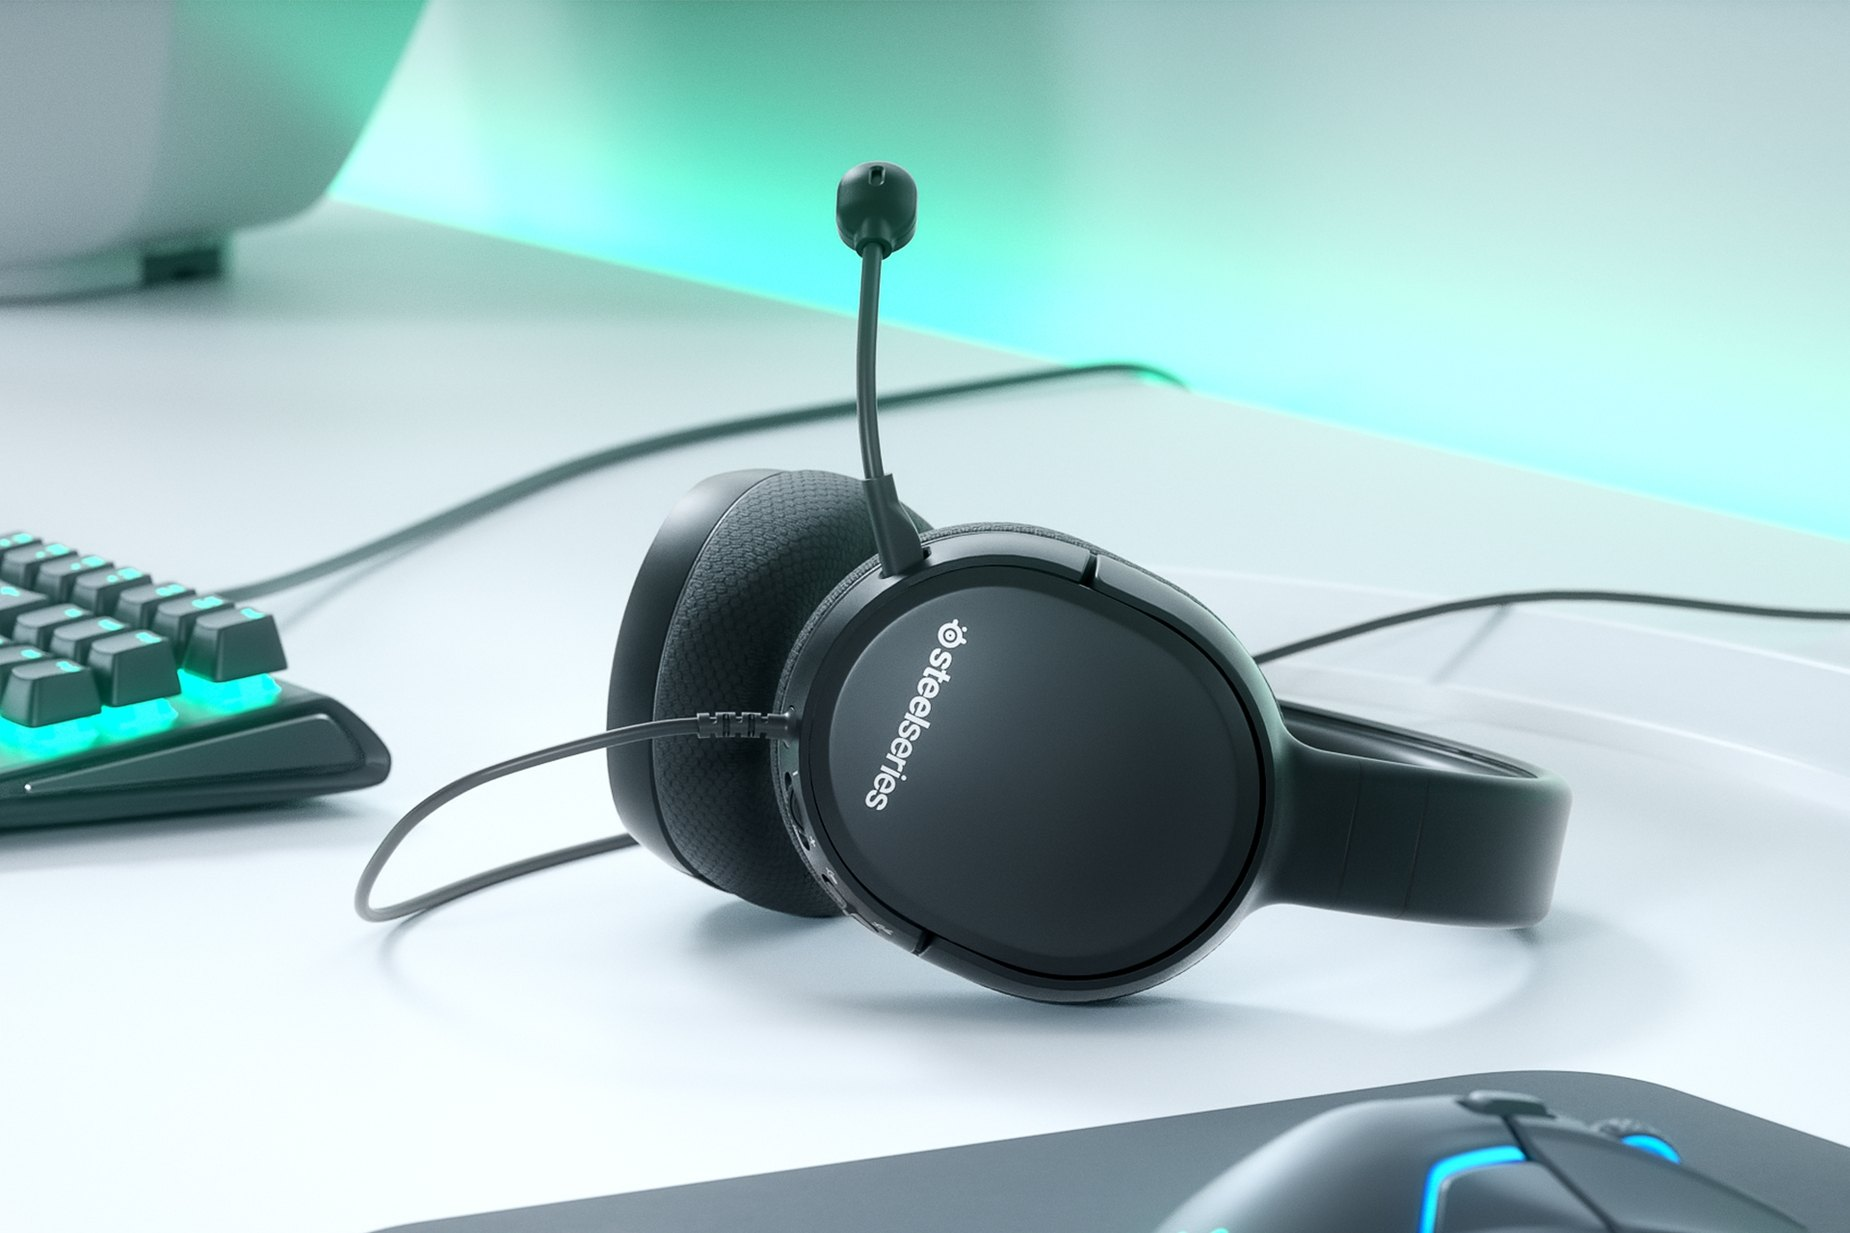 Arctis 1 gaming headset on a desk with a full SteelSeries setup including a mouse, mousepad, and keyboard